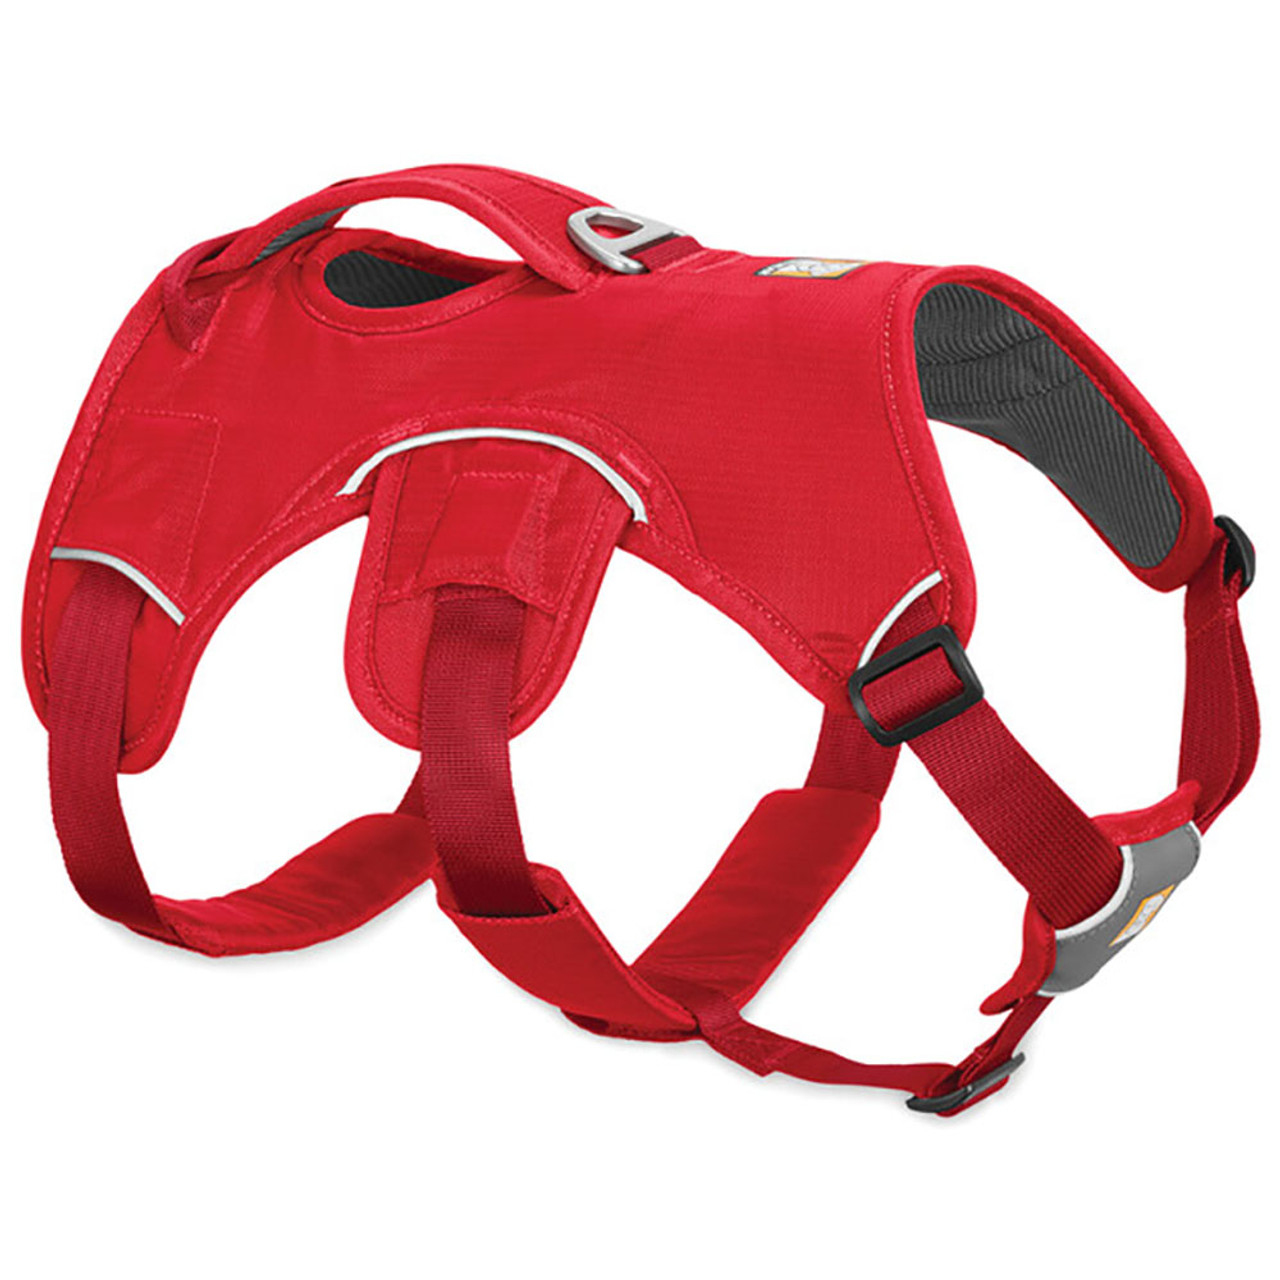 RuffWear Web Master Dog Harness - Front, Red Currant